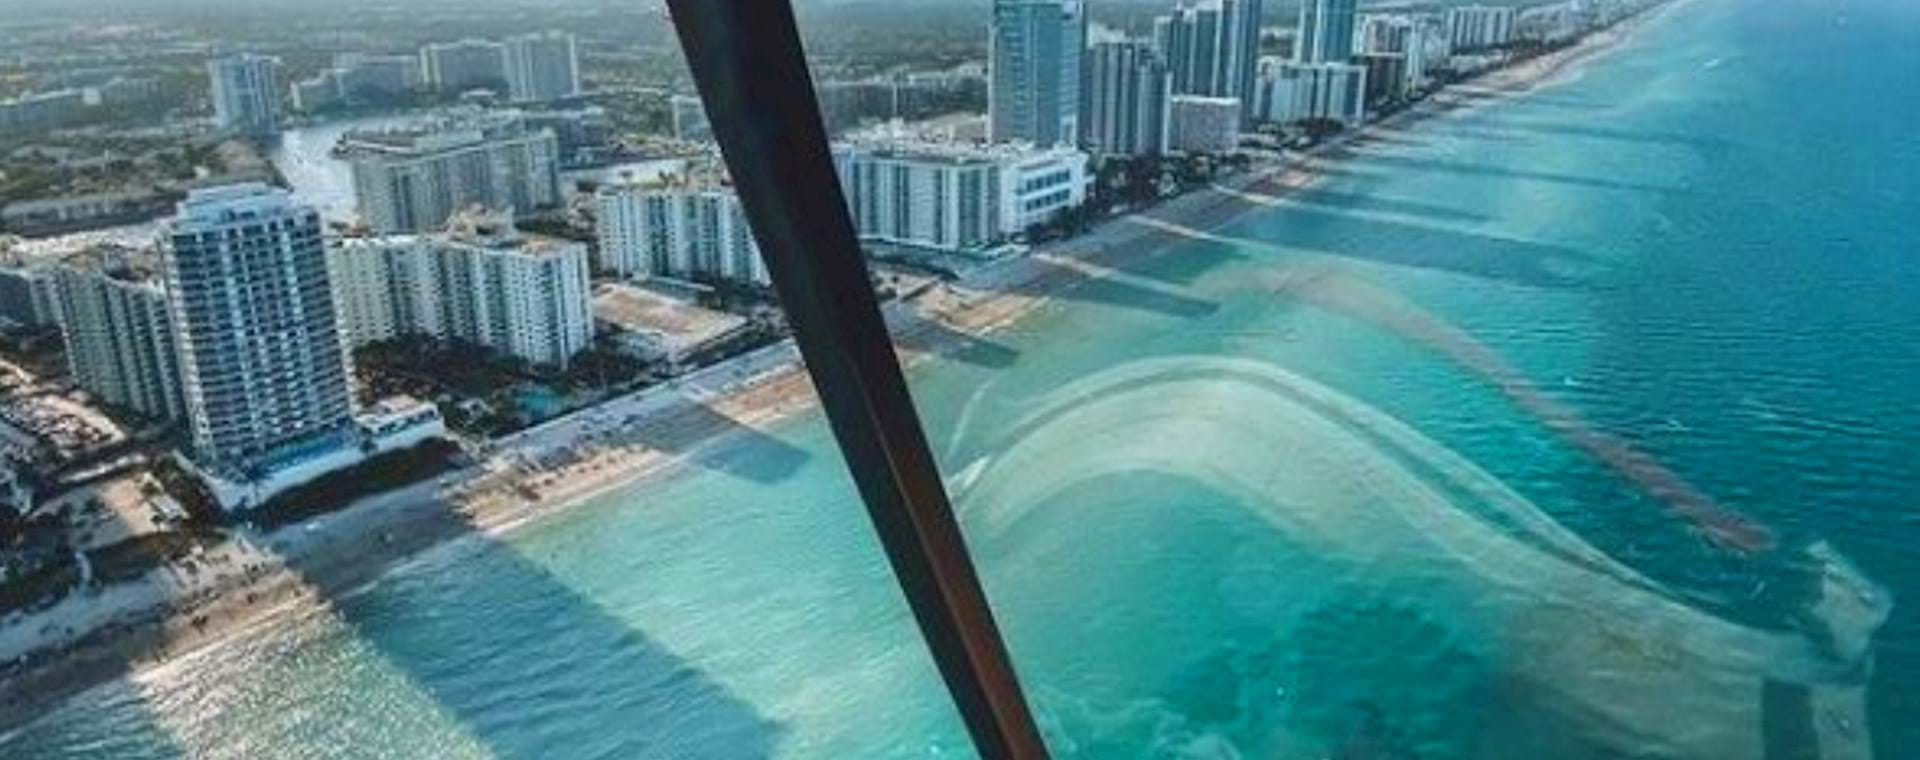 Ocean seen from helicopter